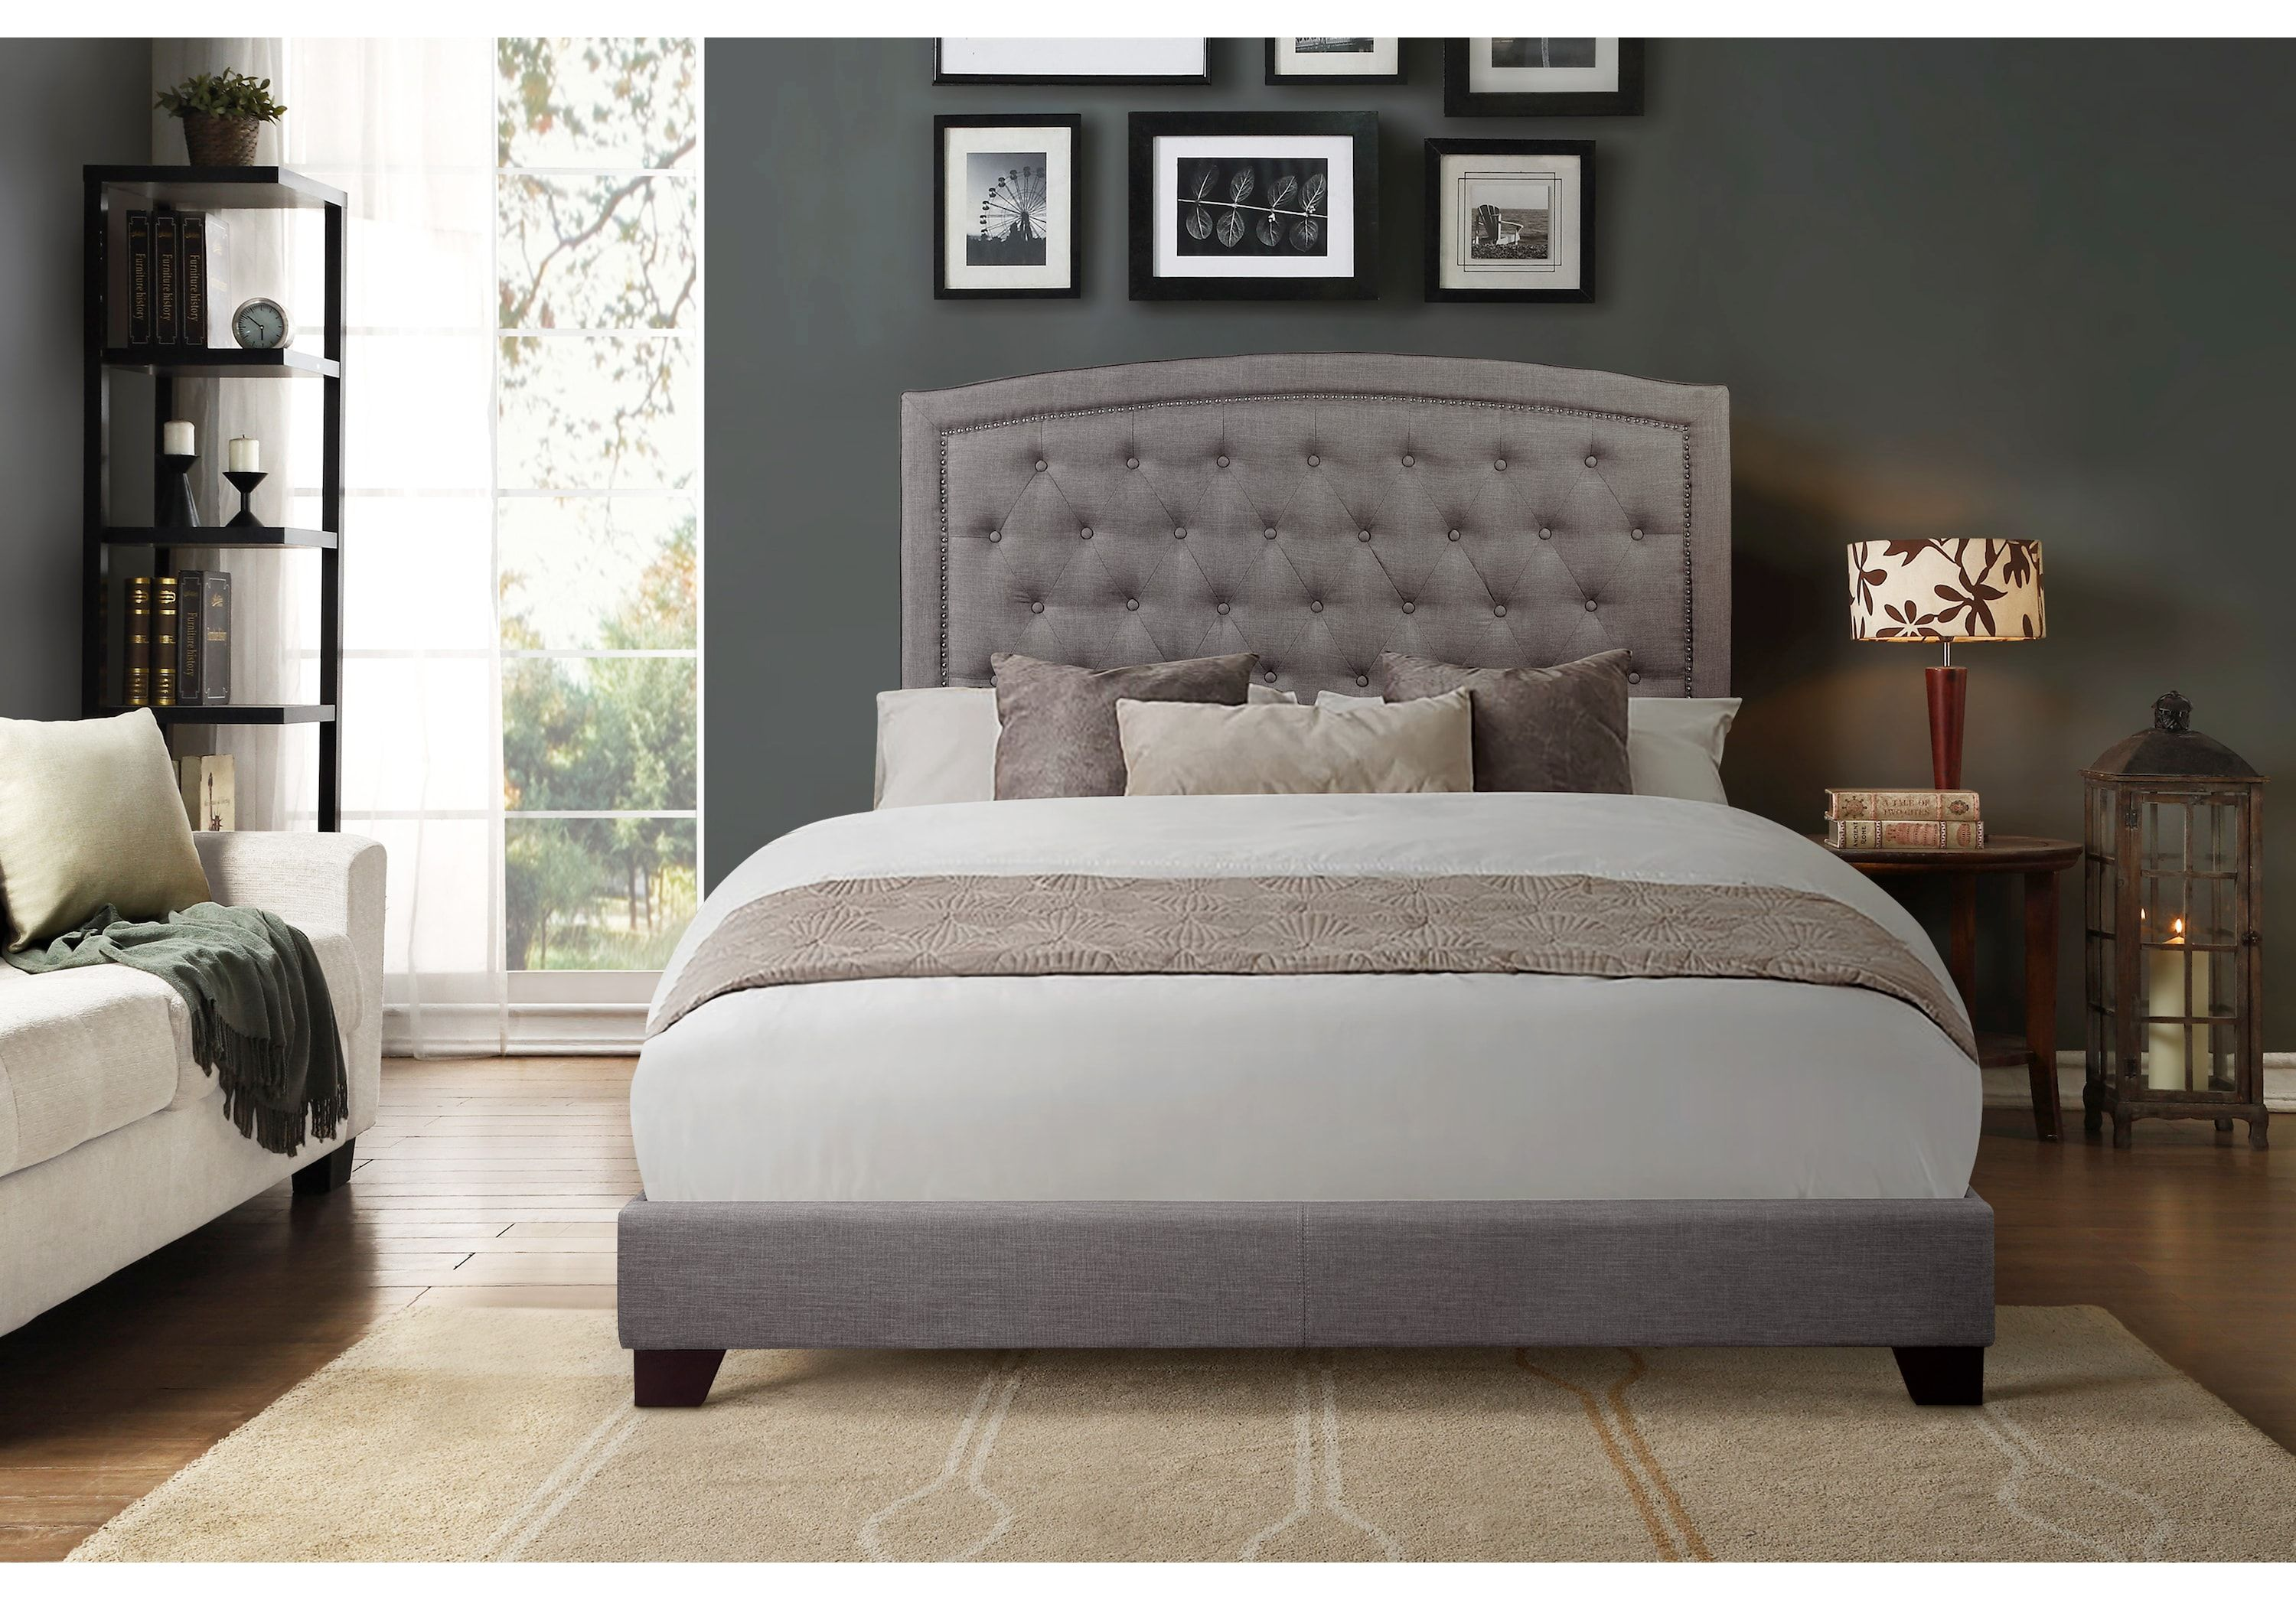 Juneberry Gray King Upholstered Bed King Upholstered Bed Queen Upholstered Bed Upholstered Beds